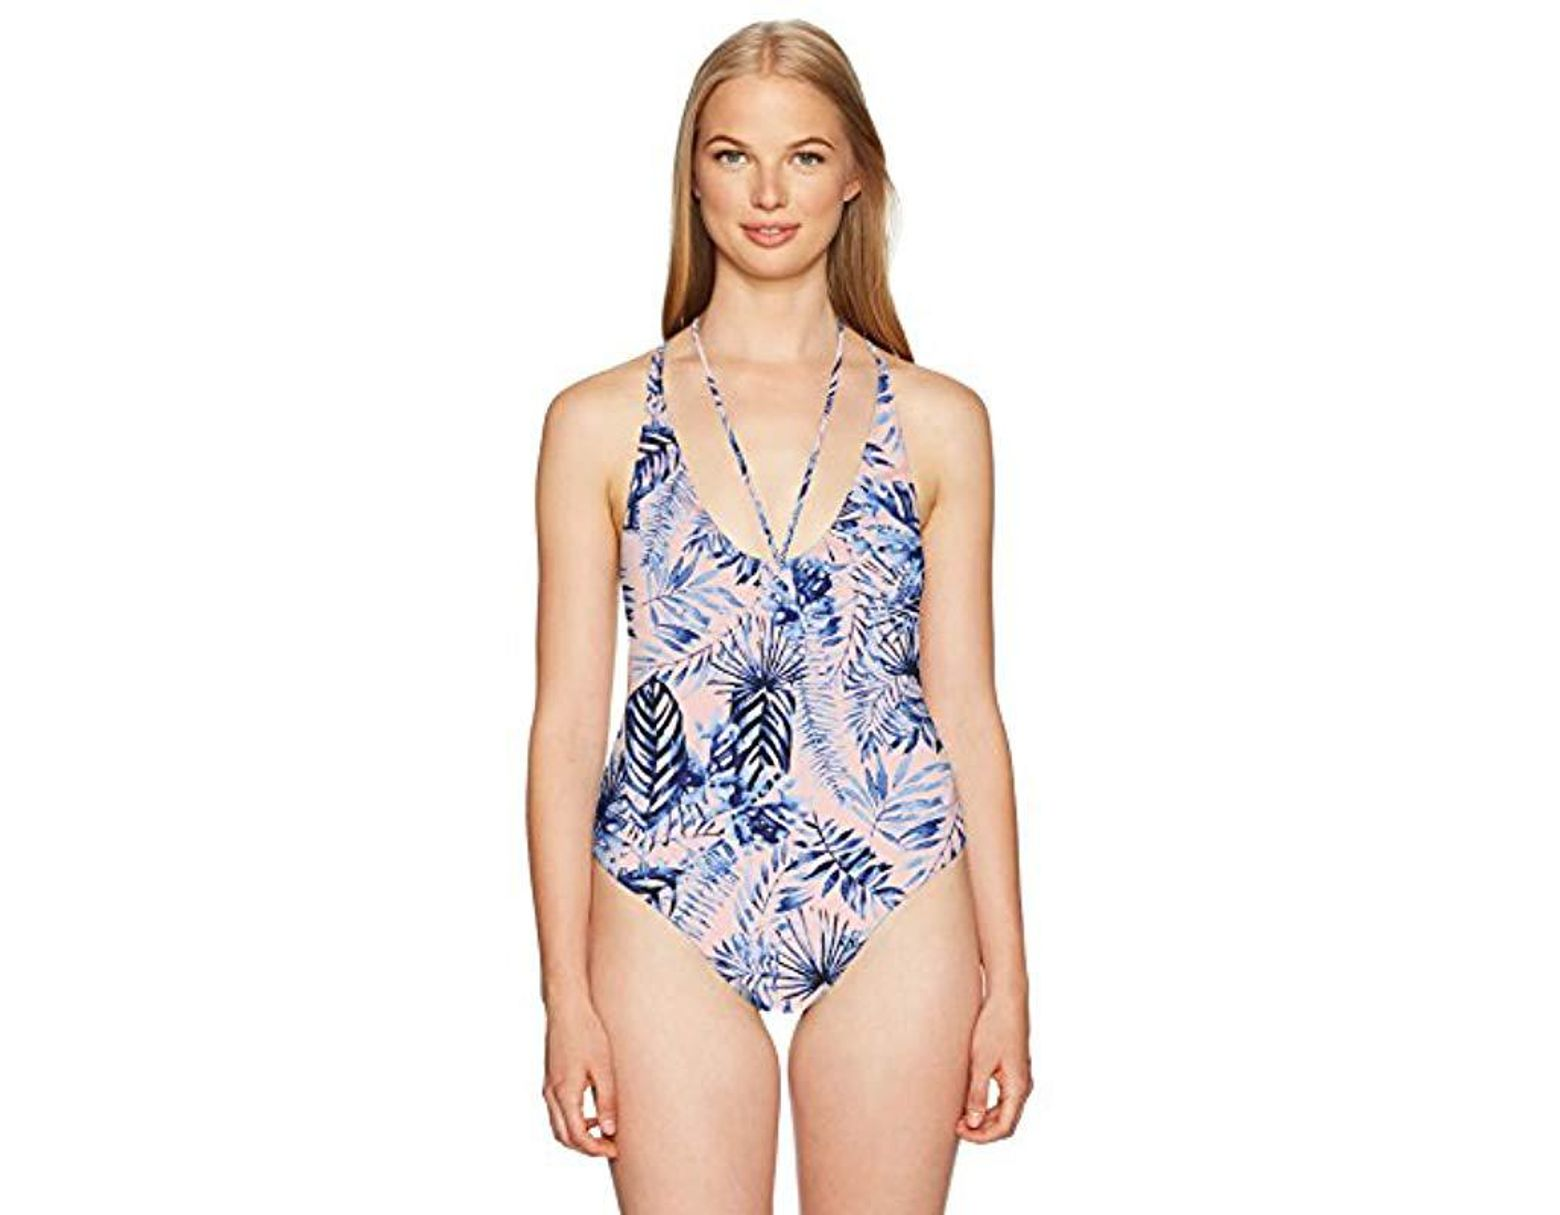 694cc29831fd3 Rip Curl Tropic Oasis One Piece Swimsuit in Blue - Save 28% - Lyst